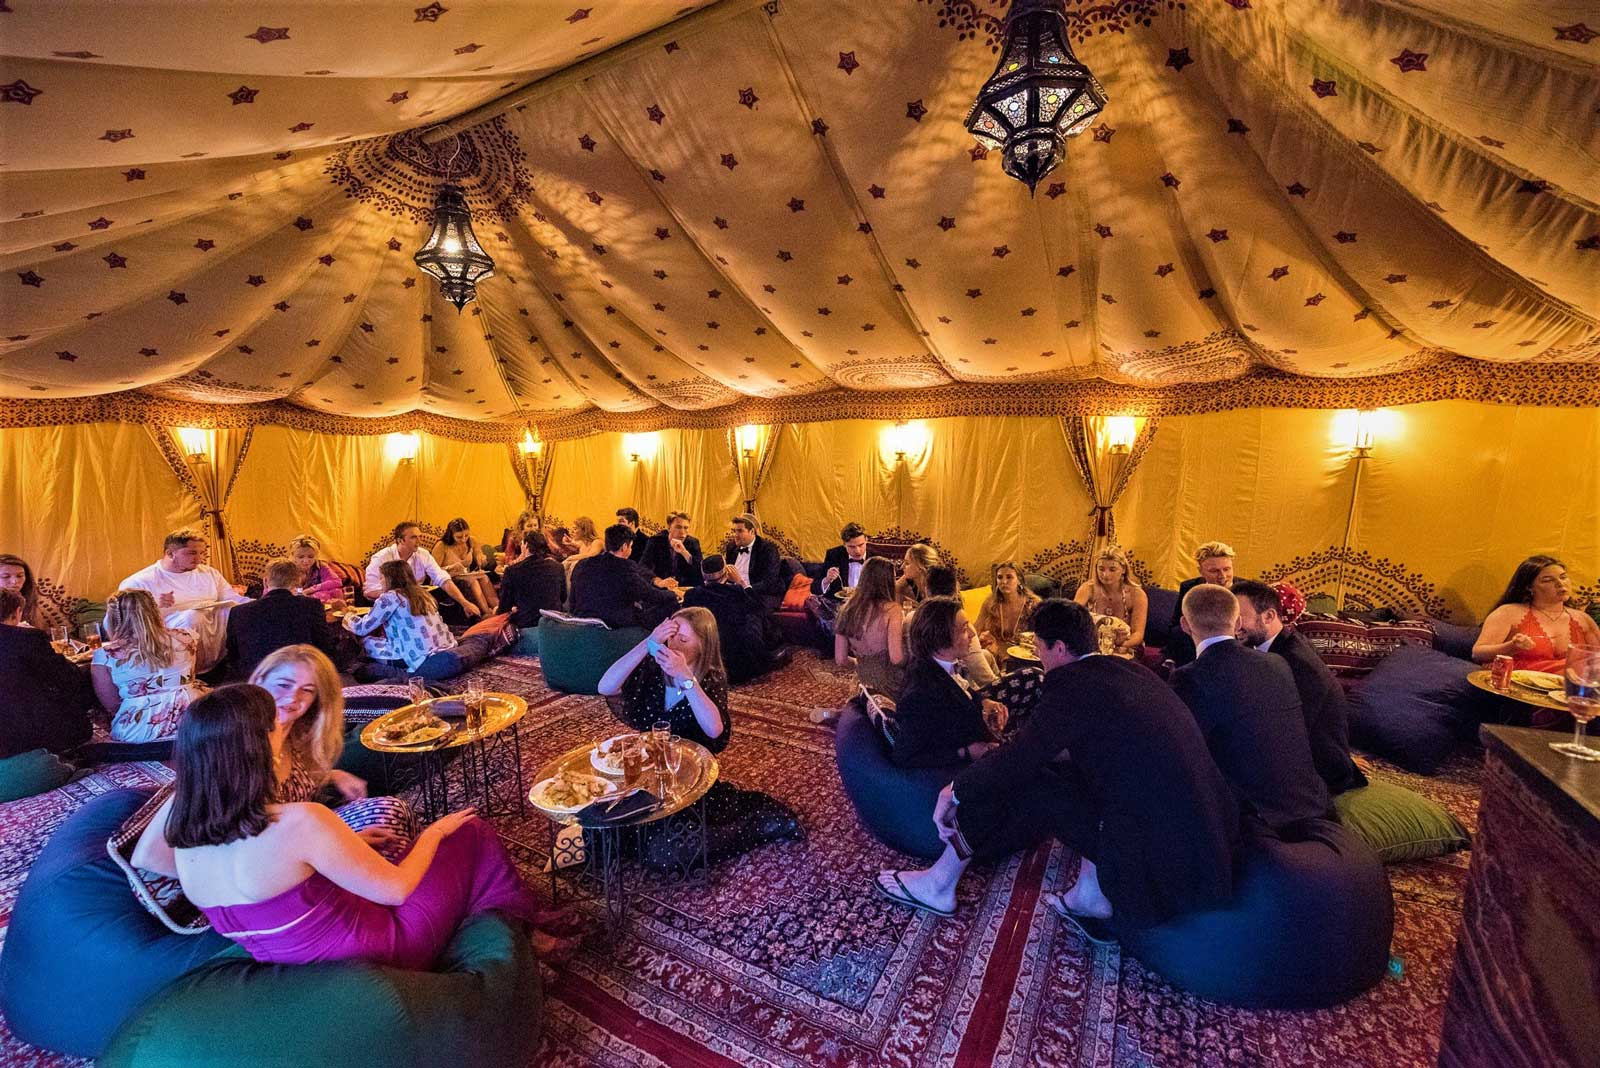 6m x 9m Bedouin Tent & Bedouin Tent Hire Prices and Arabian Events - Attentive Events